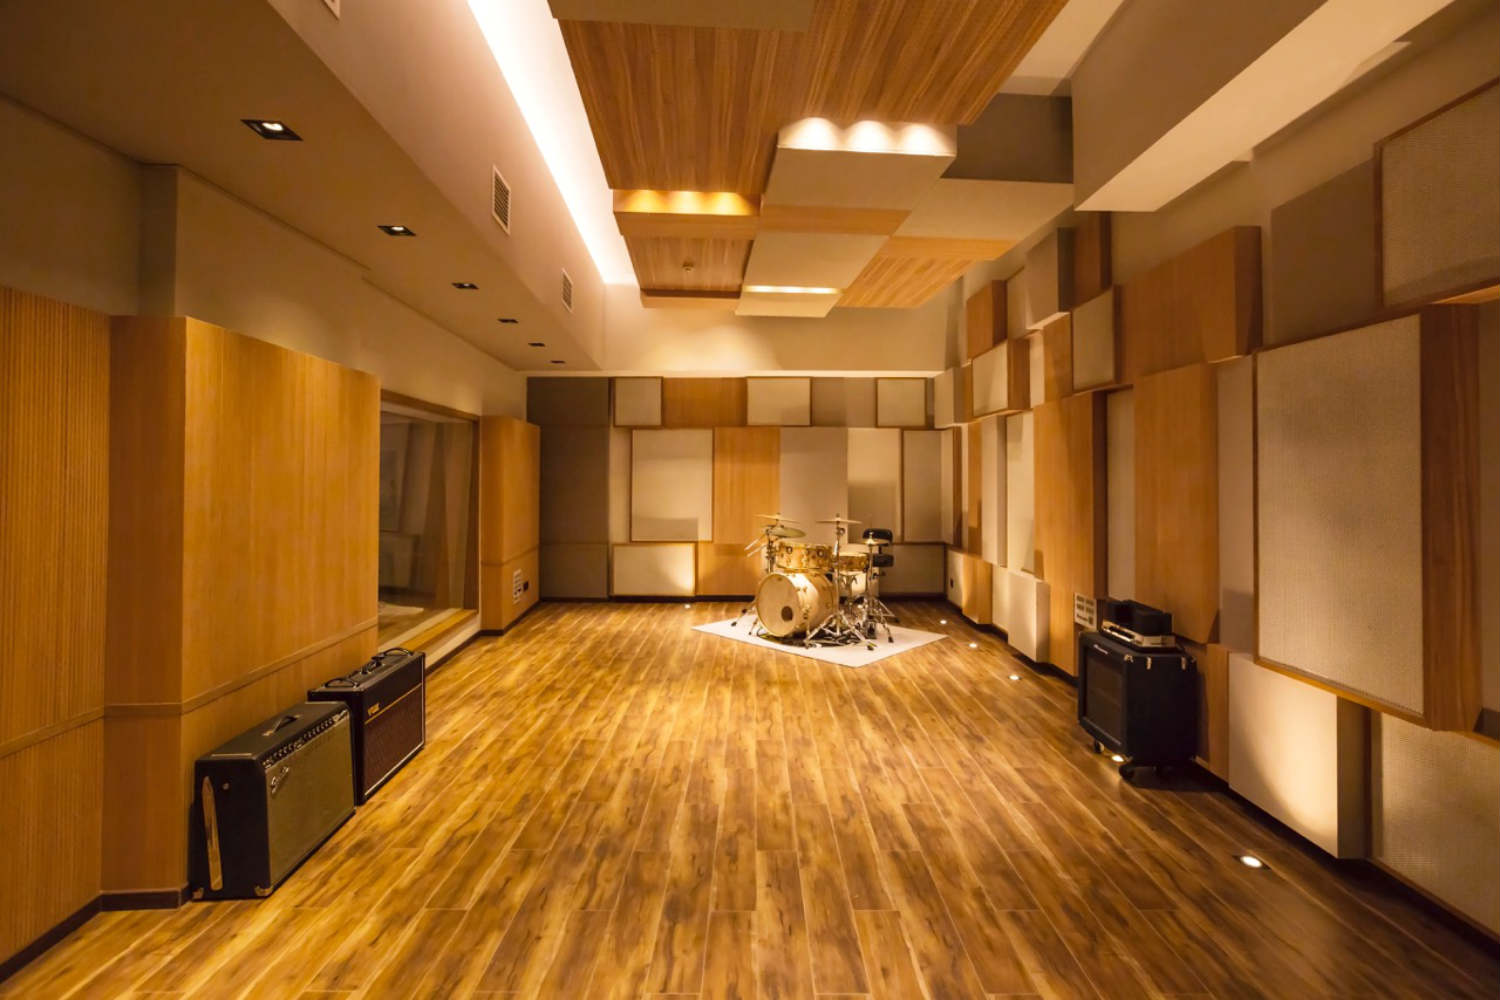 55TEC Studio in Beijing, China - New World-Class Recording Studio designed by WSDG owned by Li You. Live Room